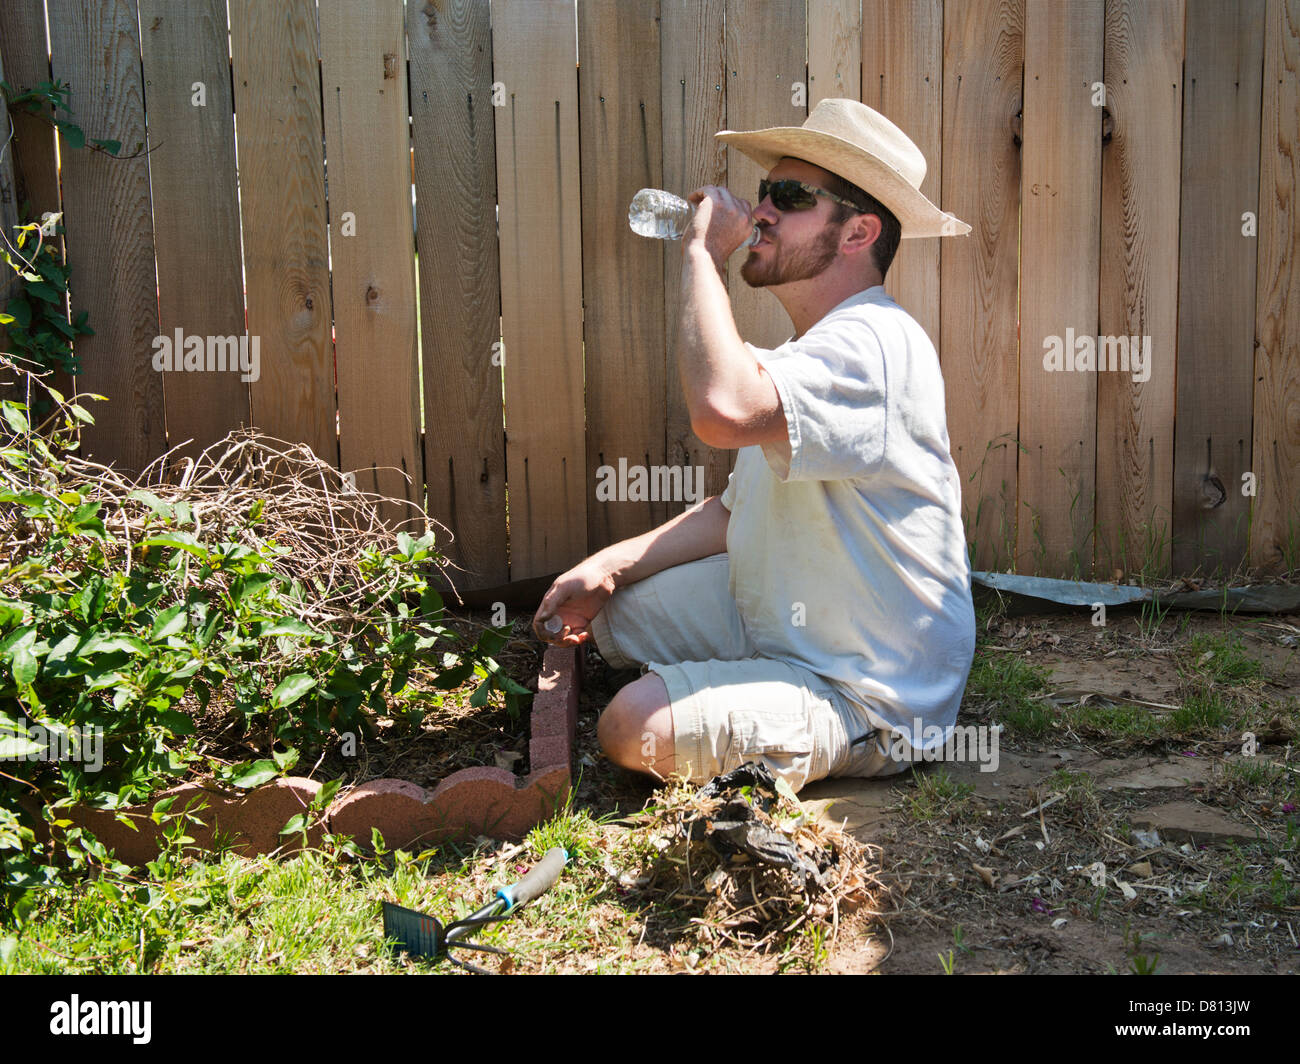 A Caucasian man, 27 years old, drinks bottled water while gardening ...